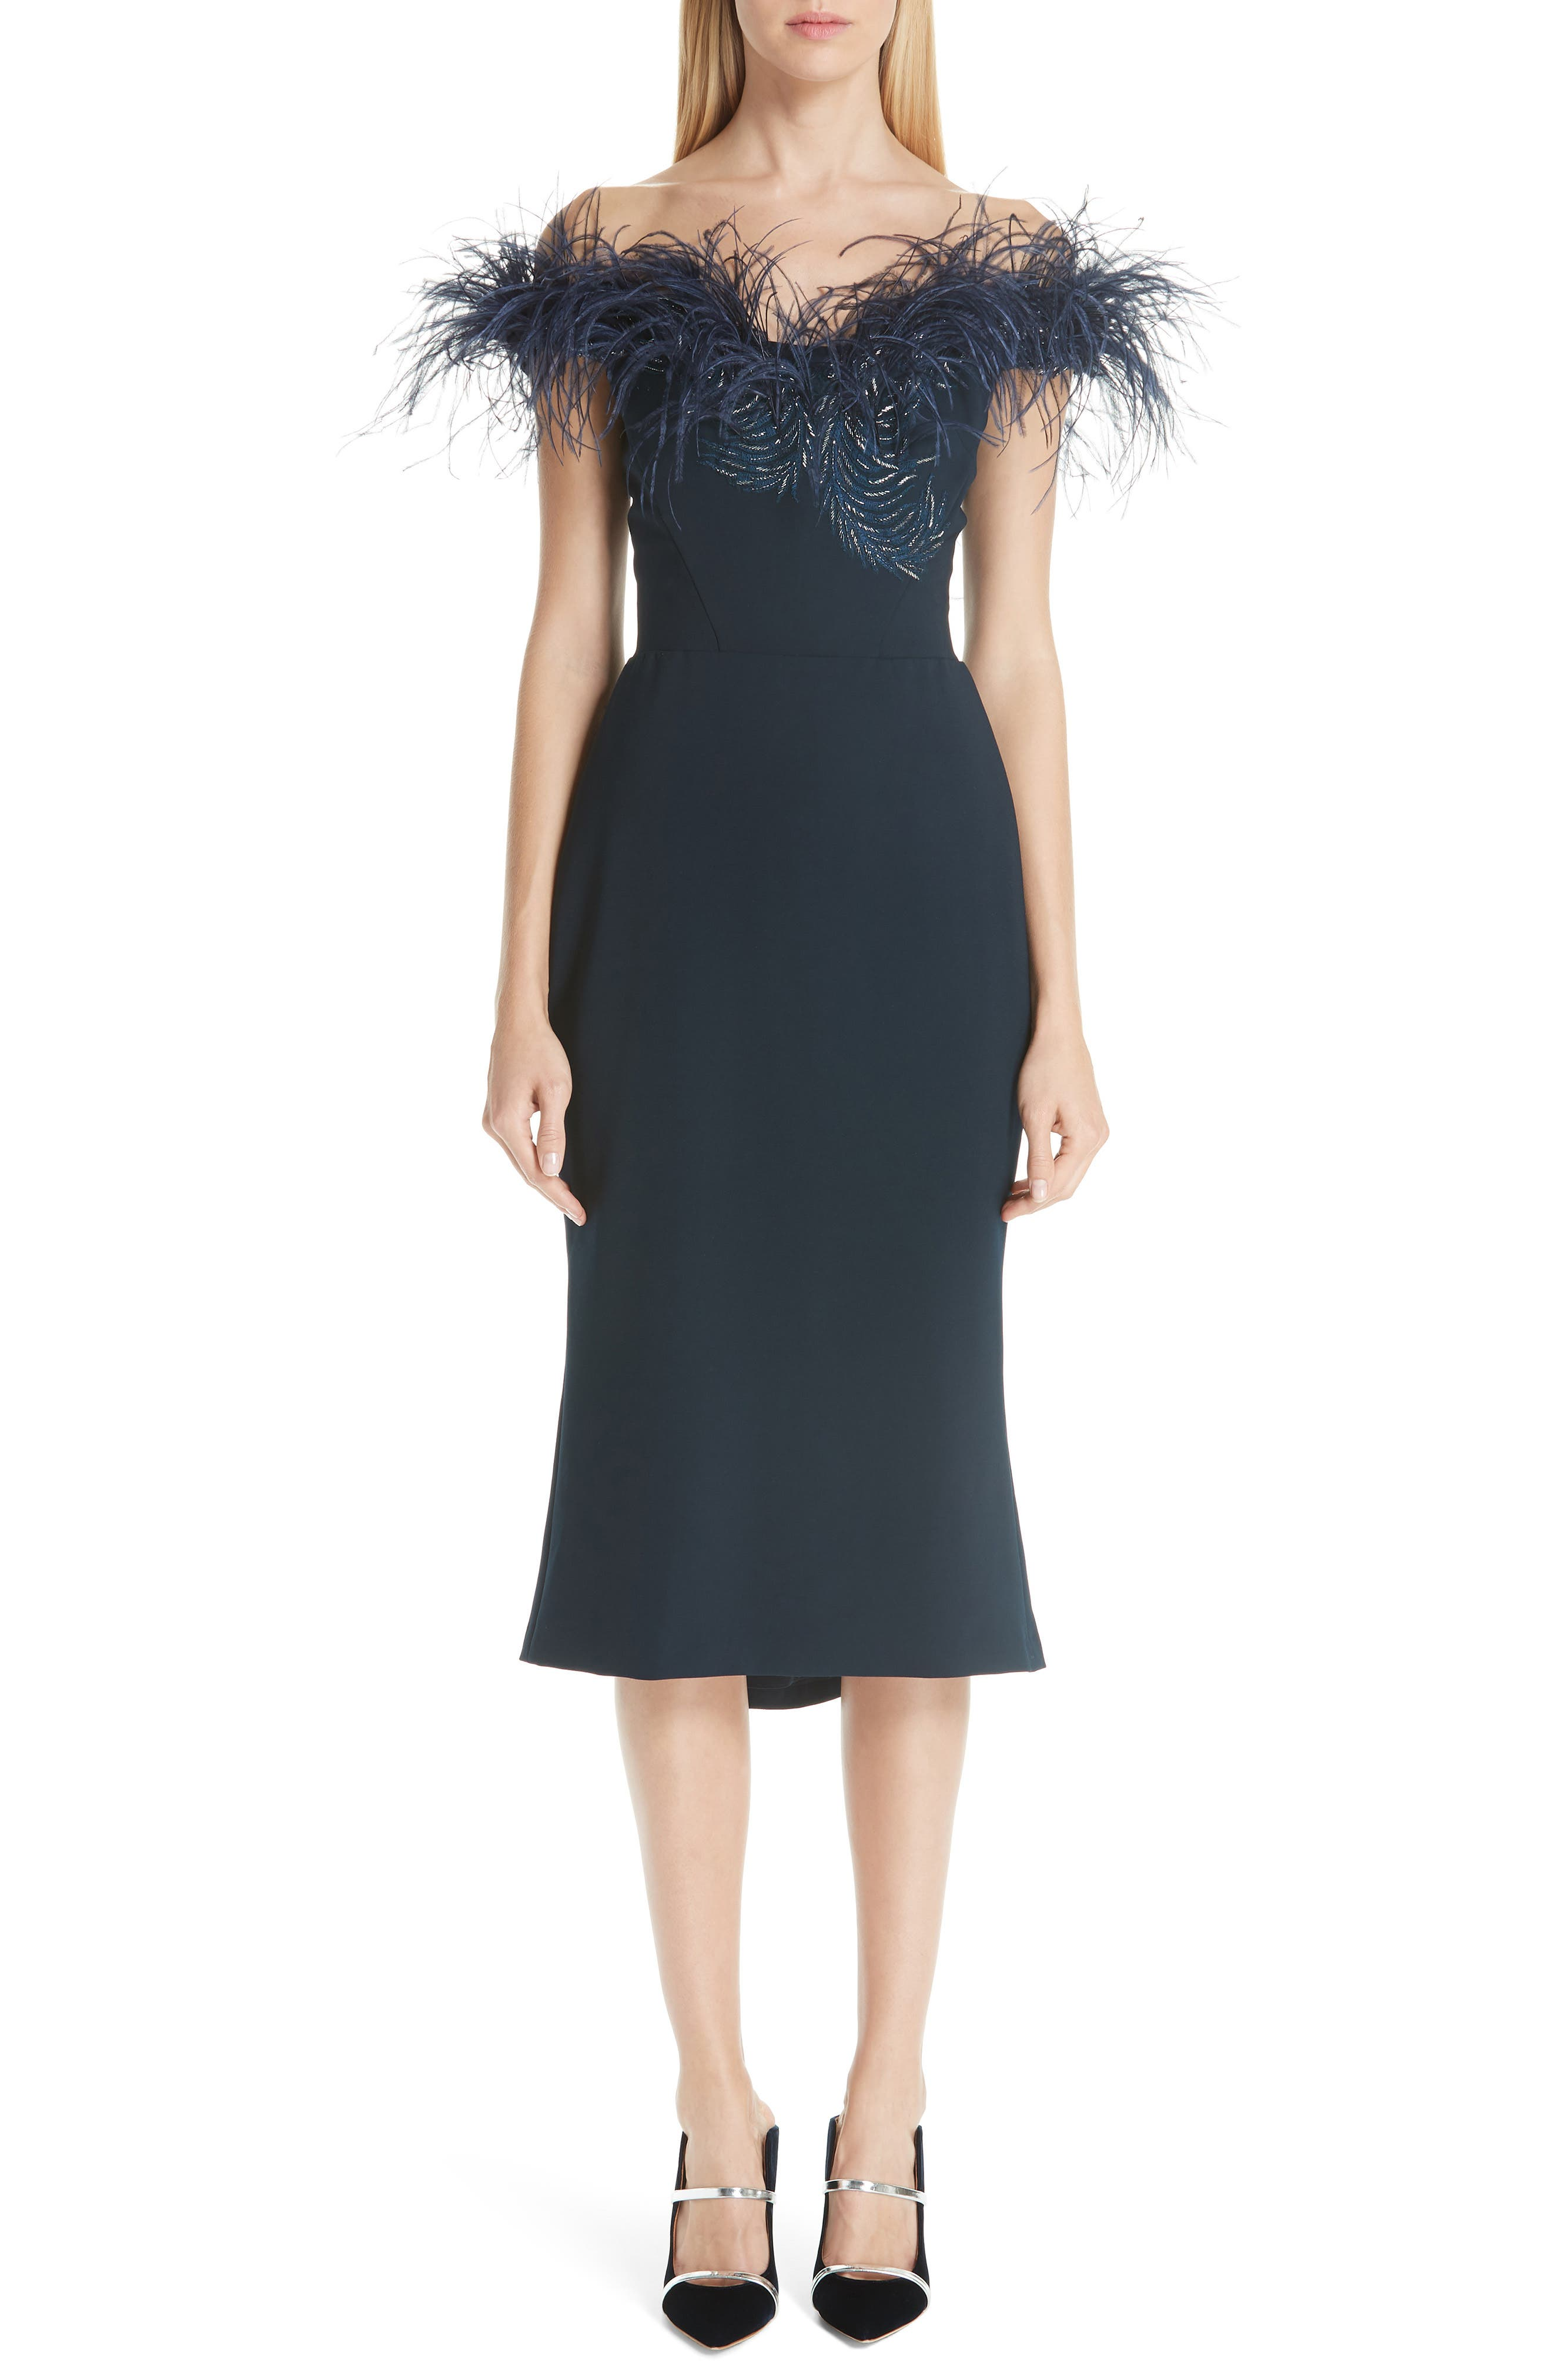 8e4e46c284c5 Plunging Sleeveless Fit-and-Flare Corded Lace Mini Cocktail Dress. Marchesa  corded lace cocktail dress with floral-embroidery.